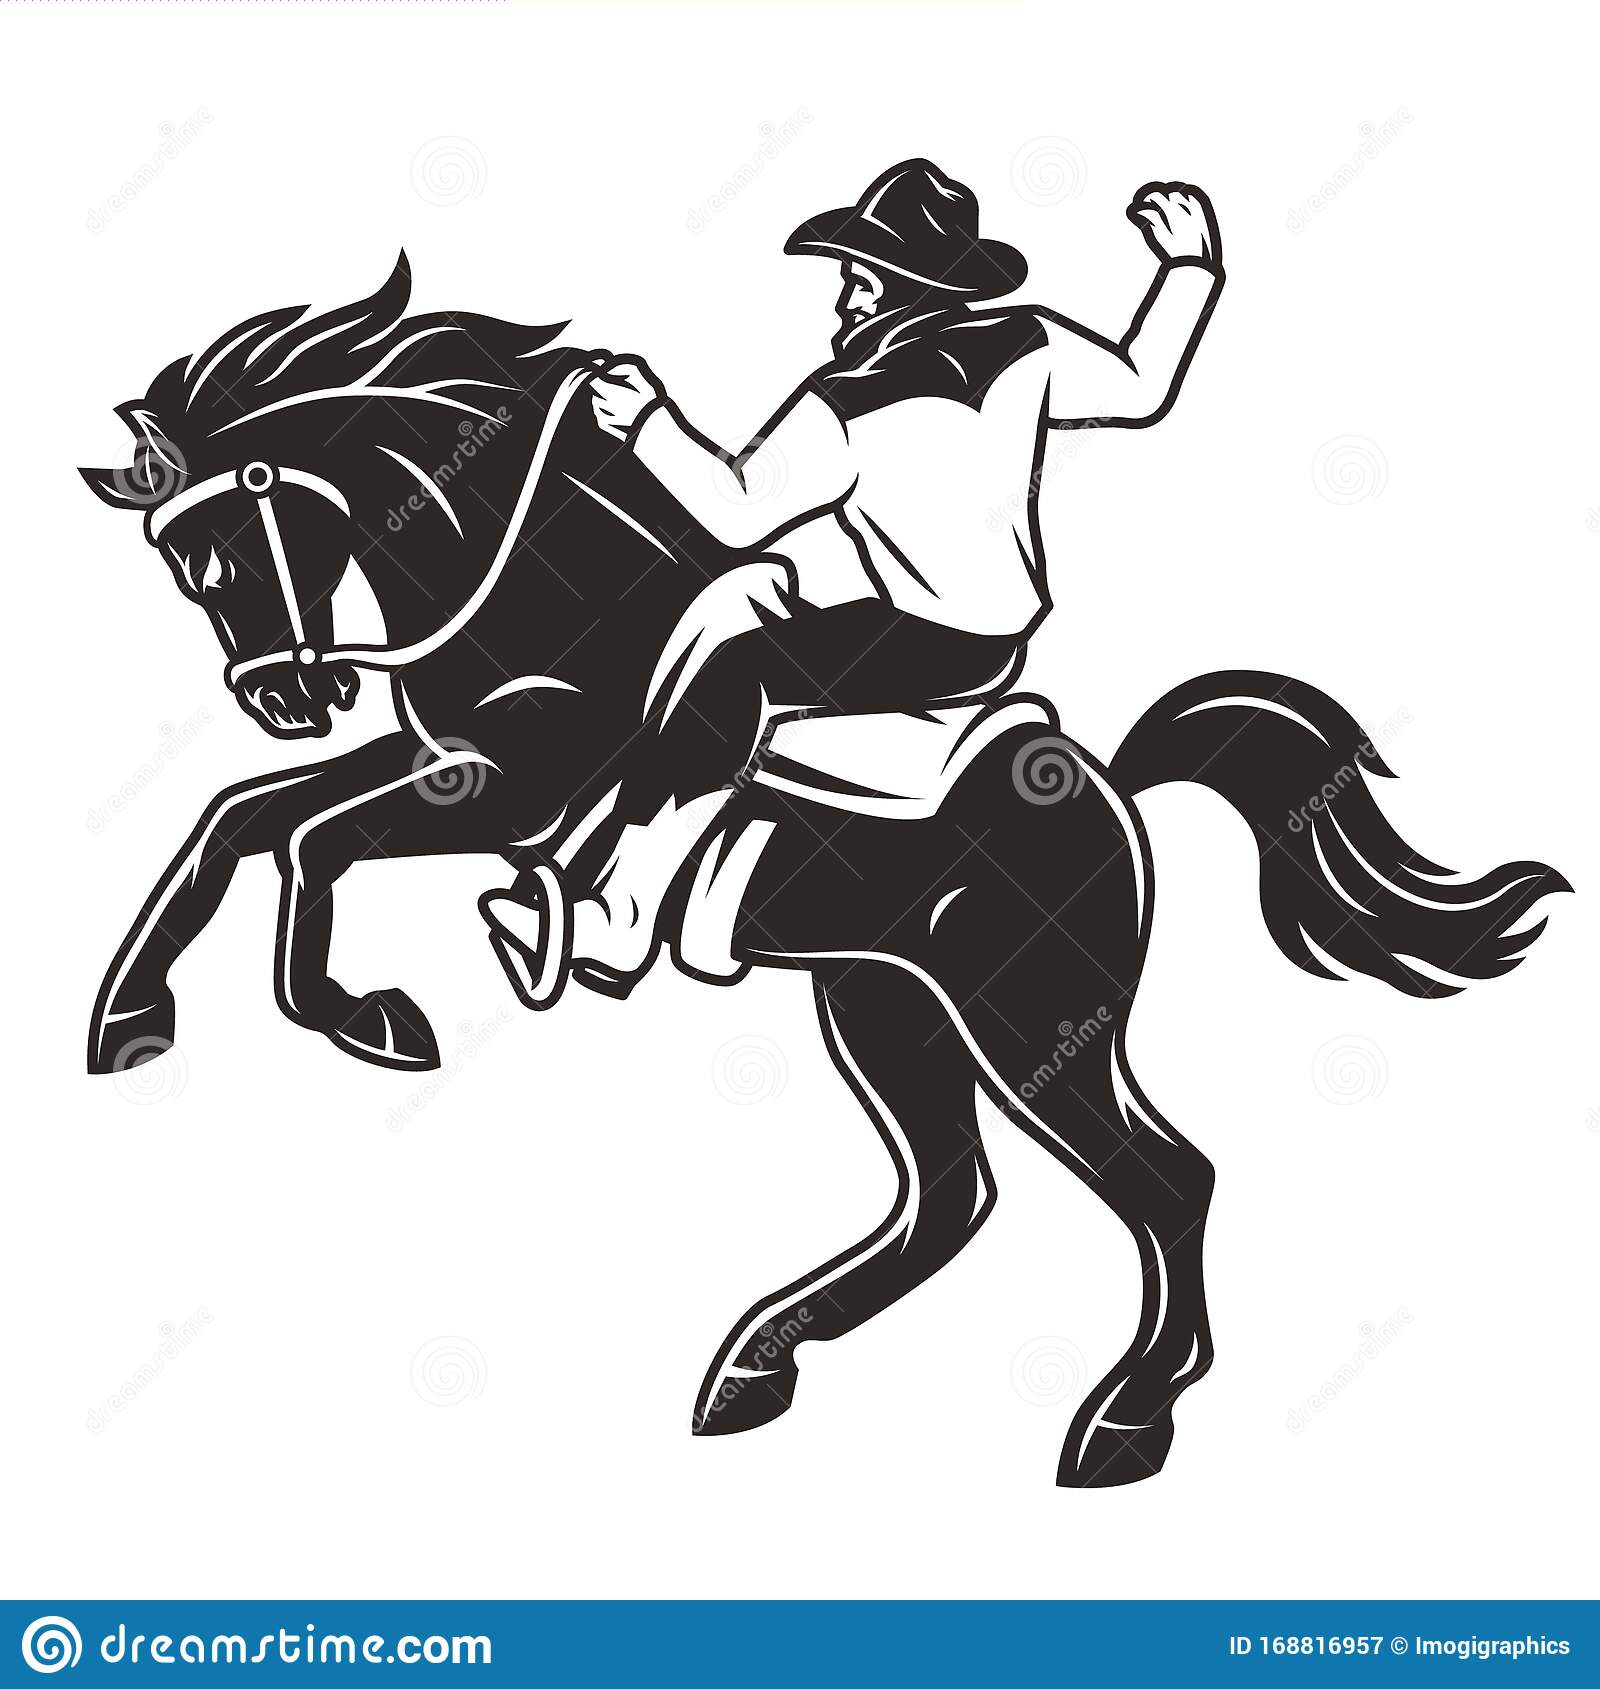 Rider In Cowboy Hat Riding Horse Stock Vector Illustration Of Isolated Vintage 168816957